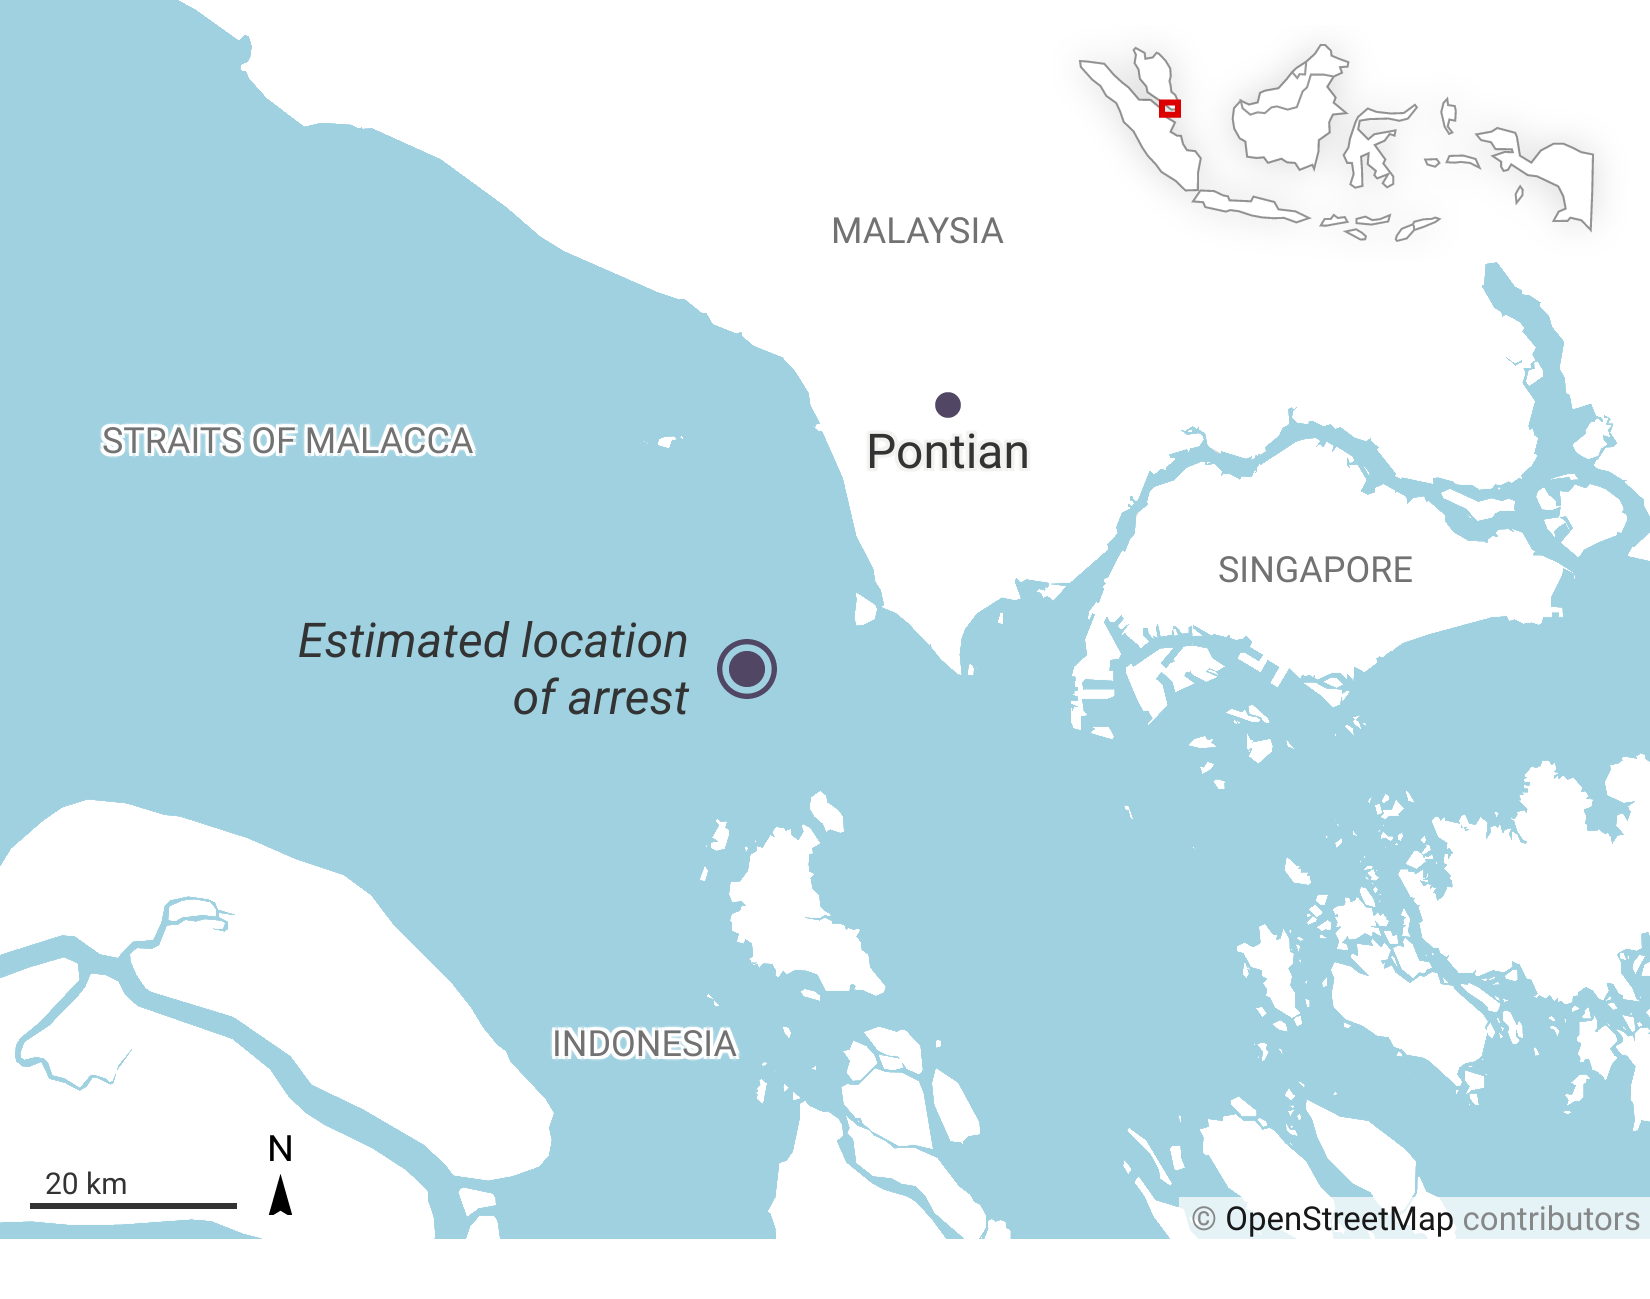 Estimated location of arrest of Jamaluddin Mohamad Bualik by the Indonesian authorities.